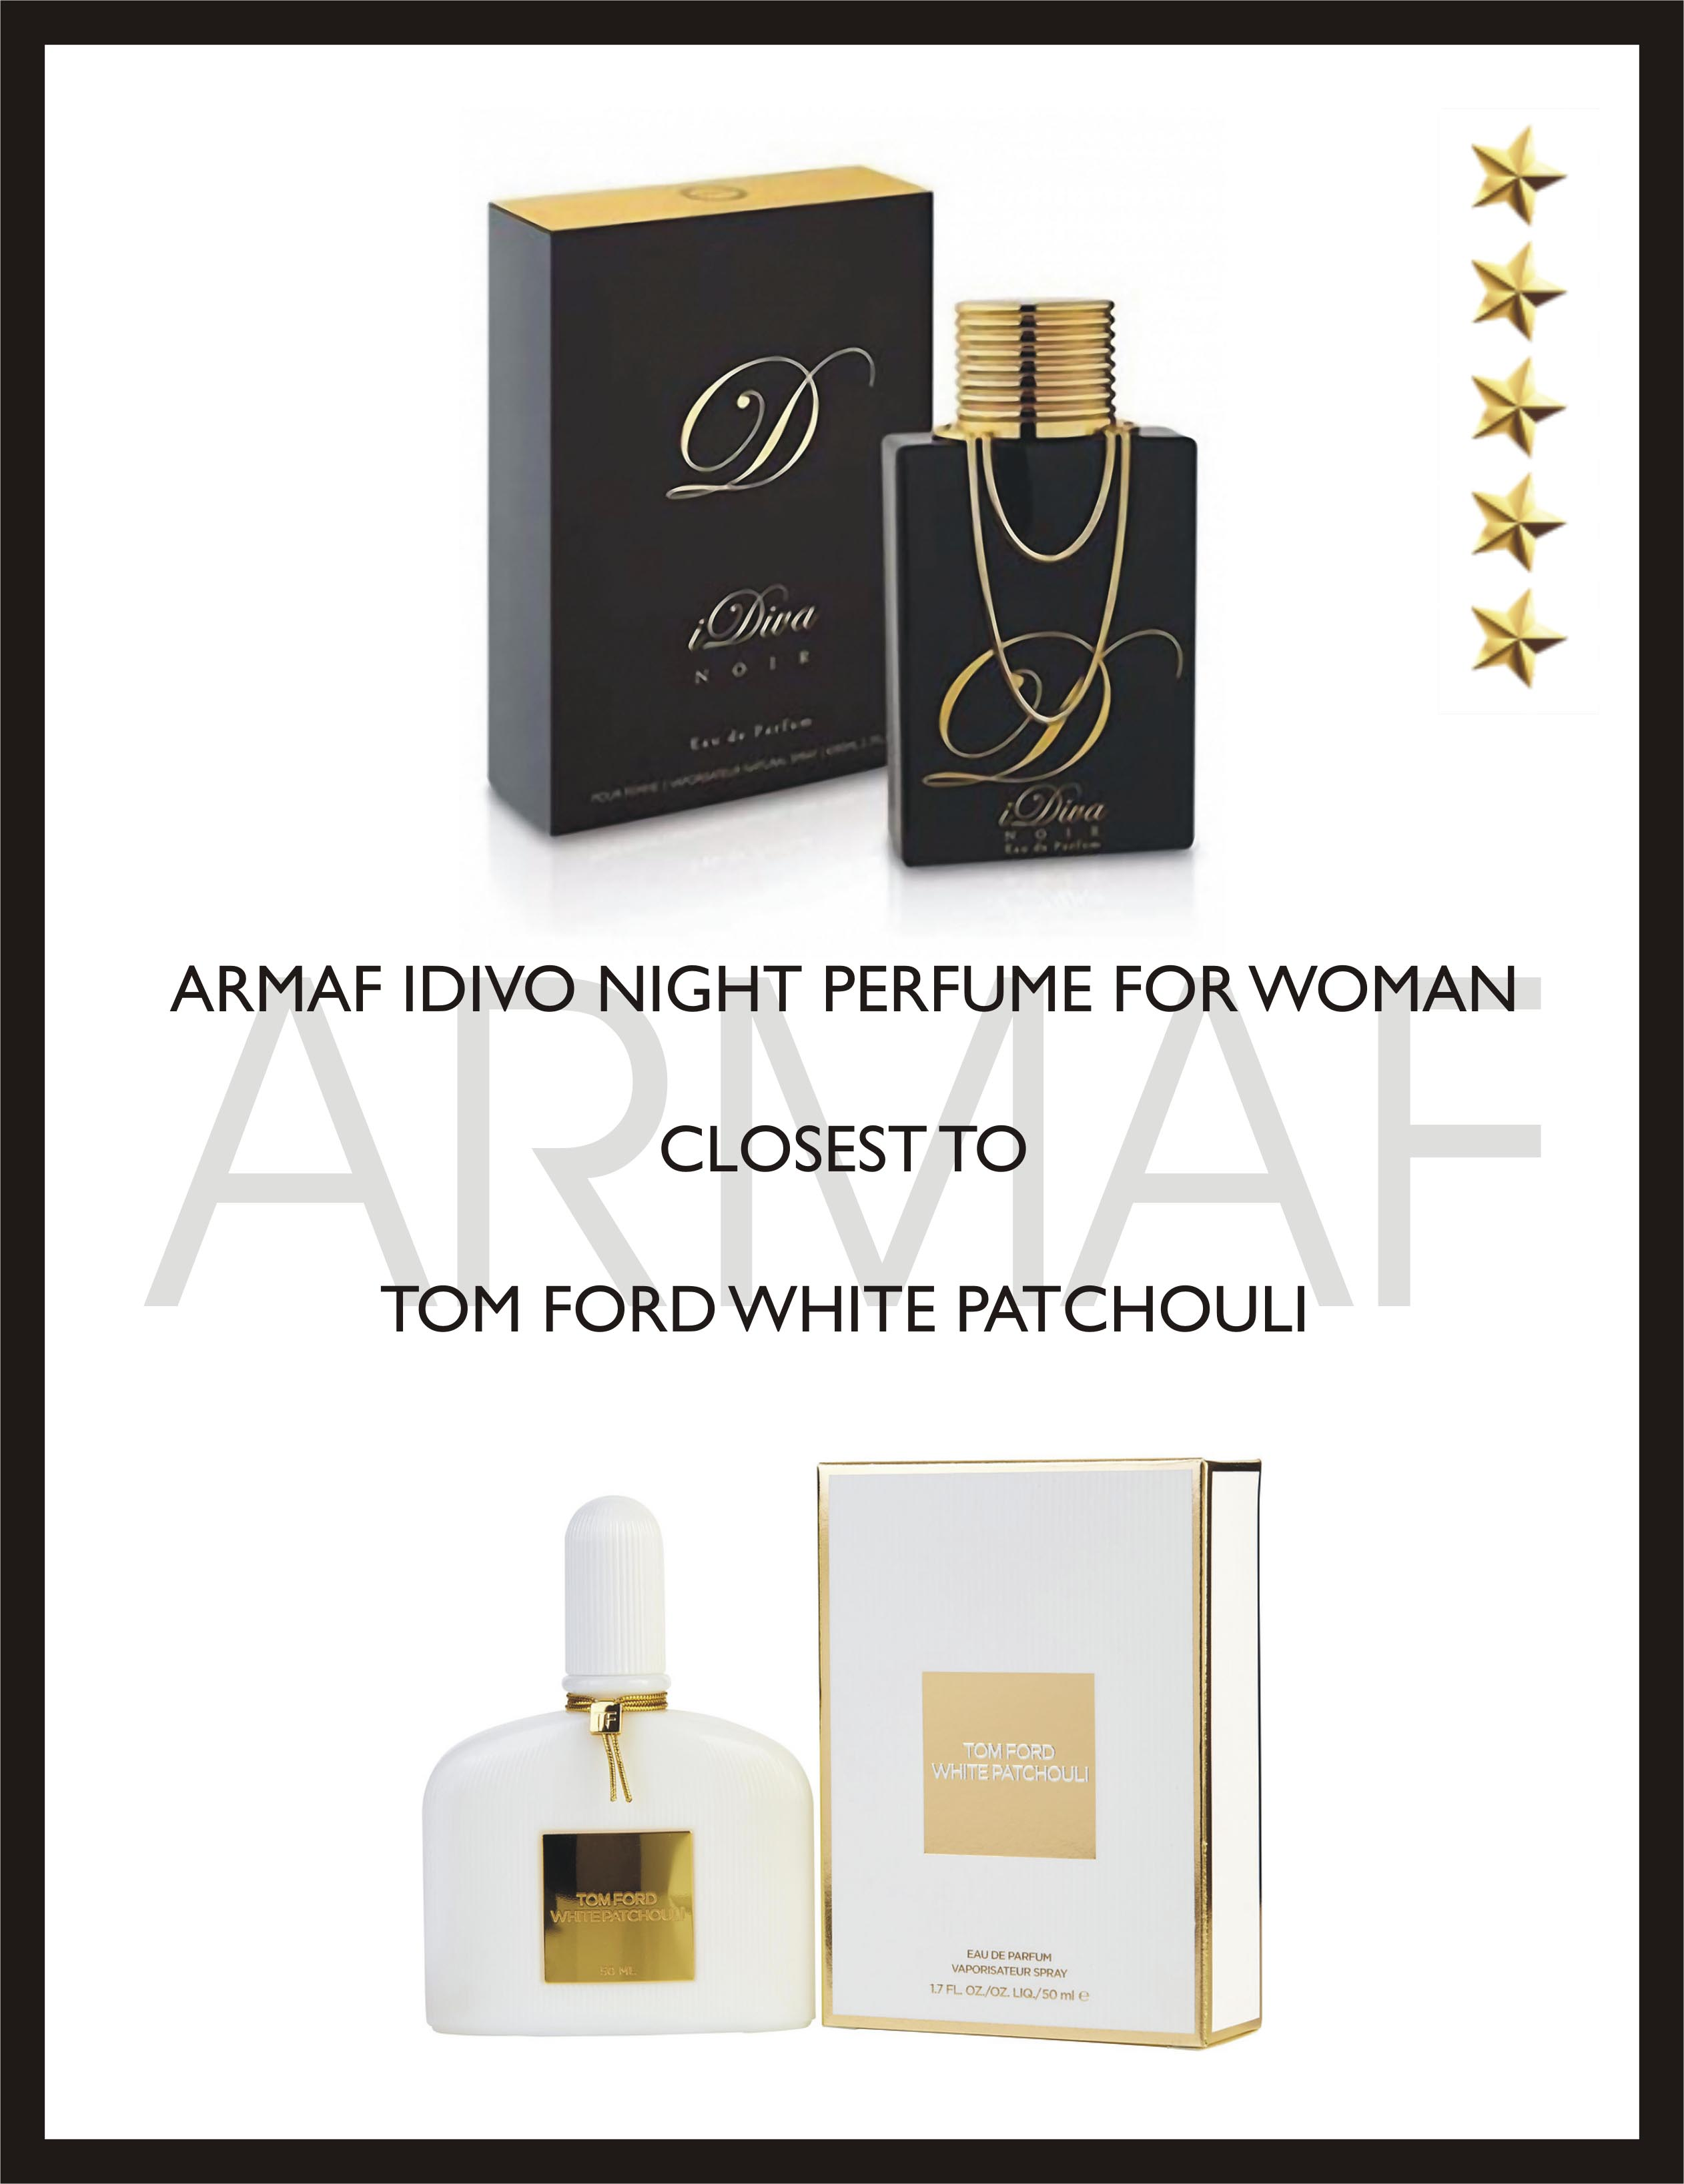 Top 10 New Launch Armaf Fragrances And Clash Of The Clones Parfum Singapur Bvlgari Man I Divo Tom Ford White Patchouli